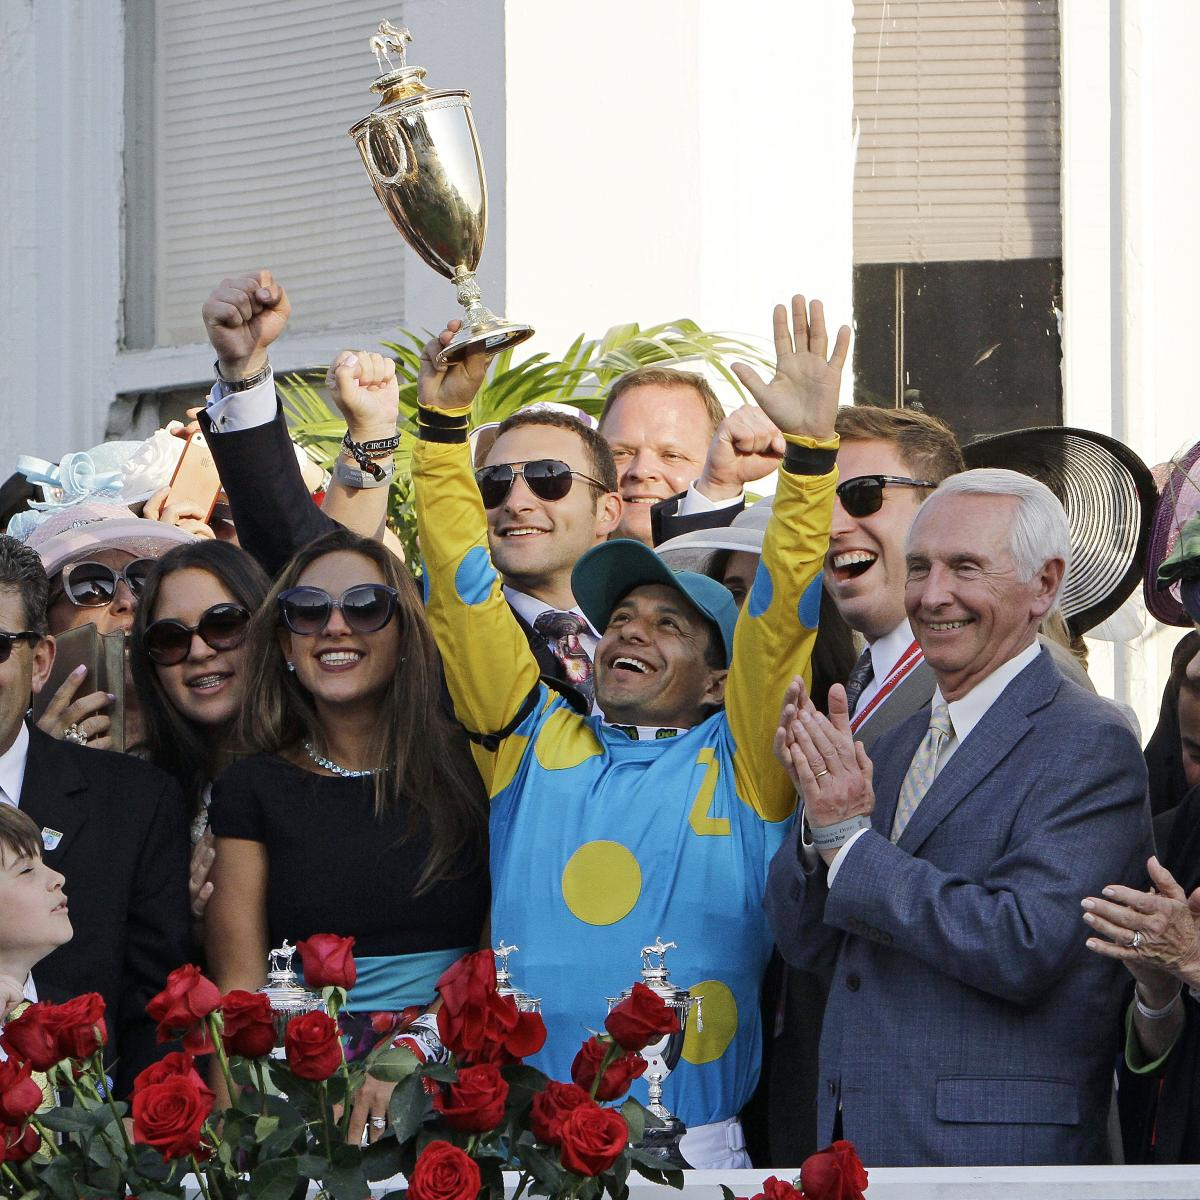 Kentucky Derby Results 2015: Race Recap And Analysis From